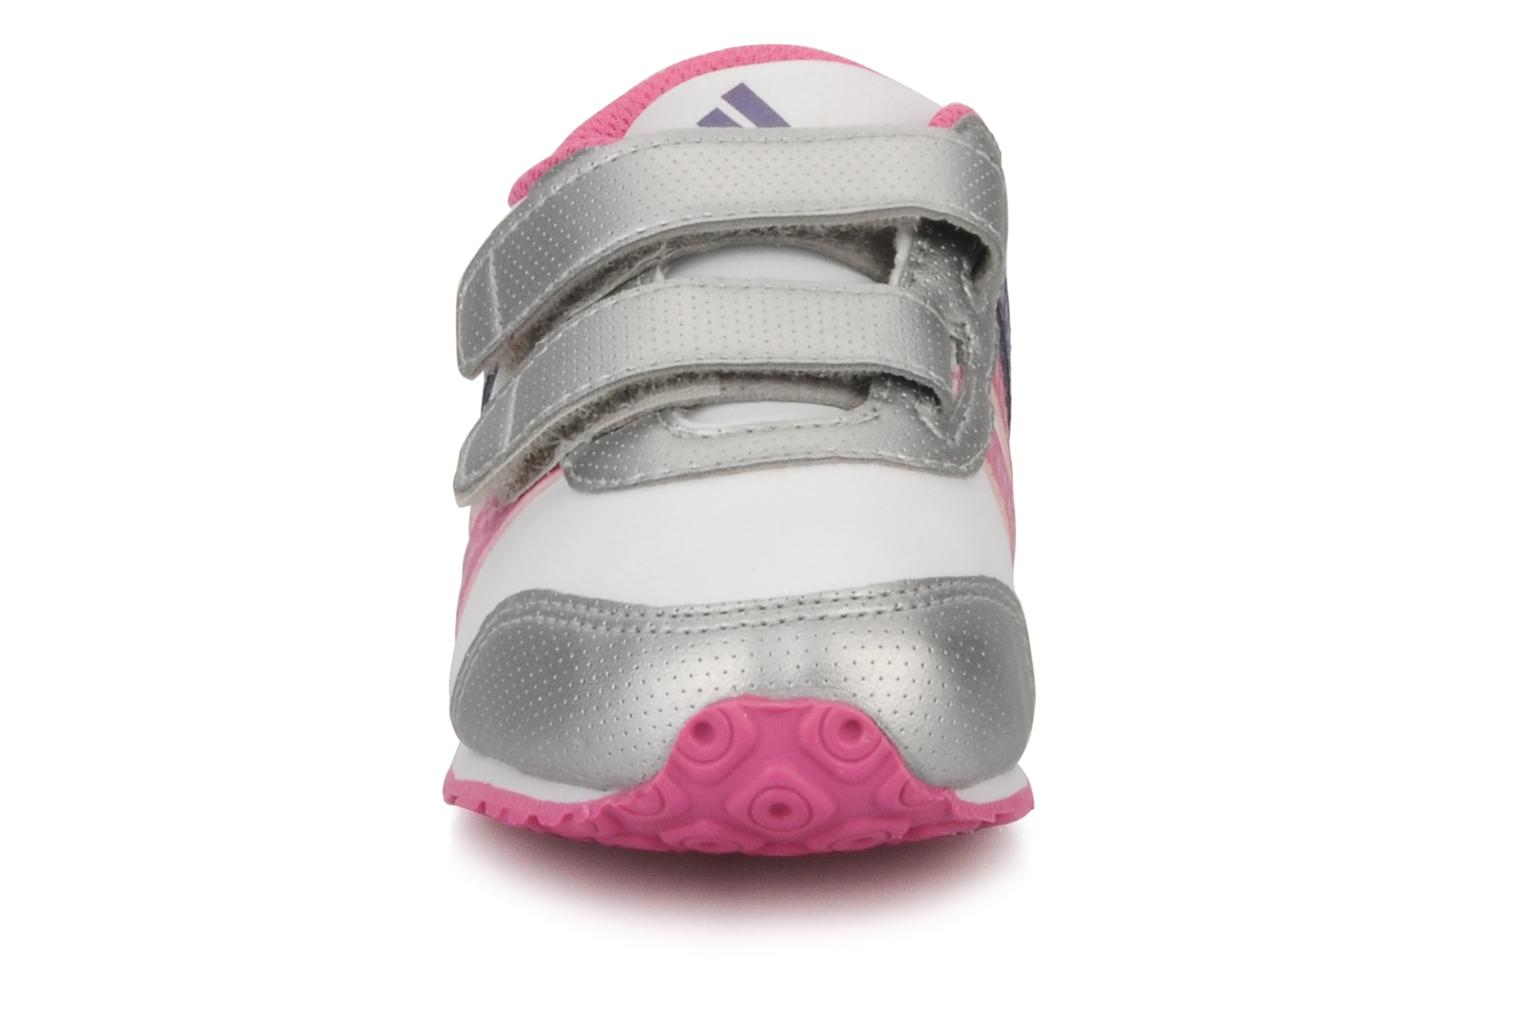 Snice cf i Running white / intense pink f11 / clear pink f11